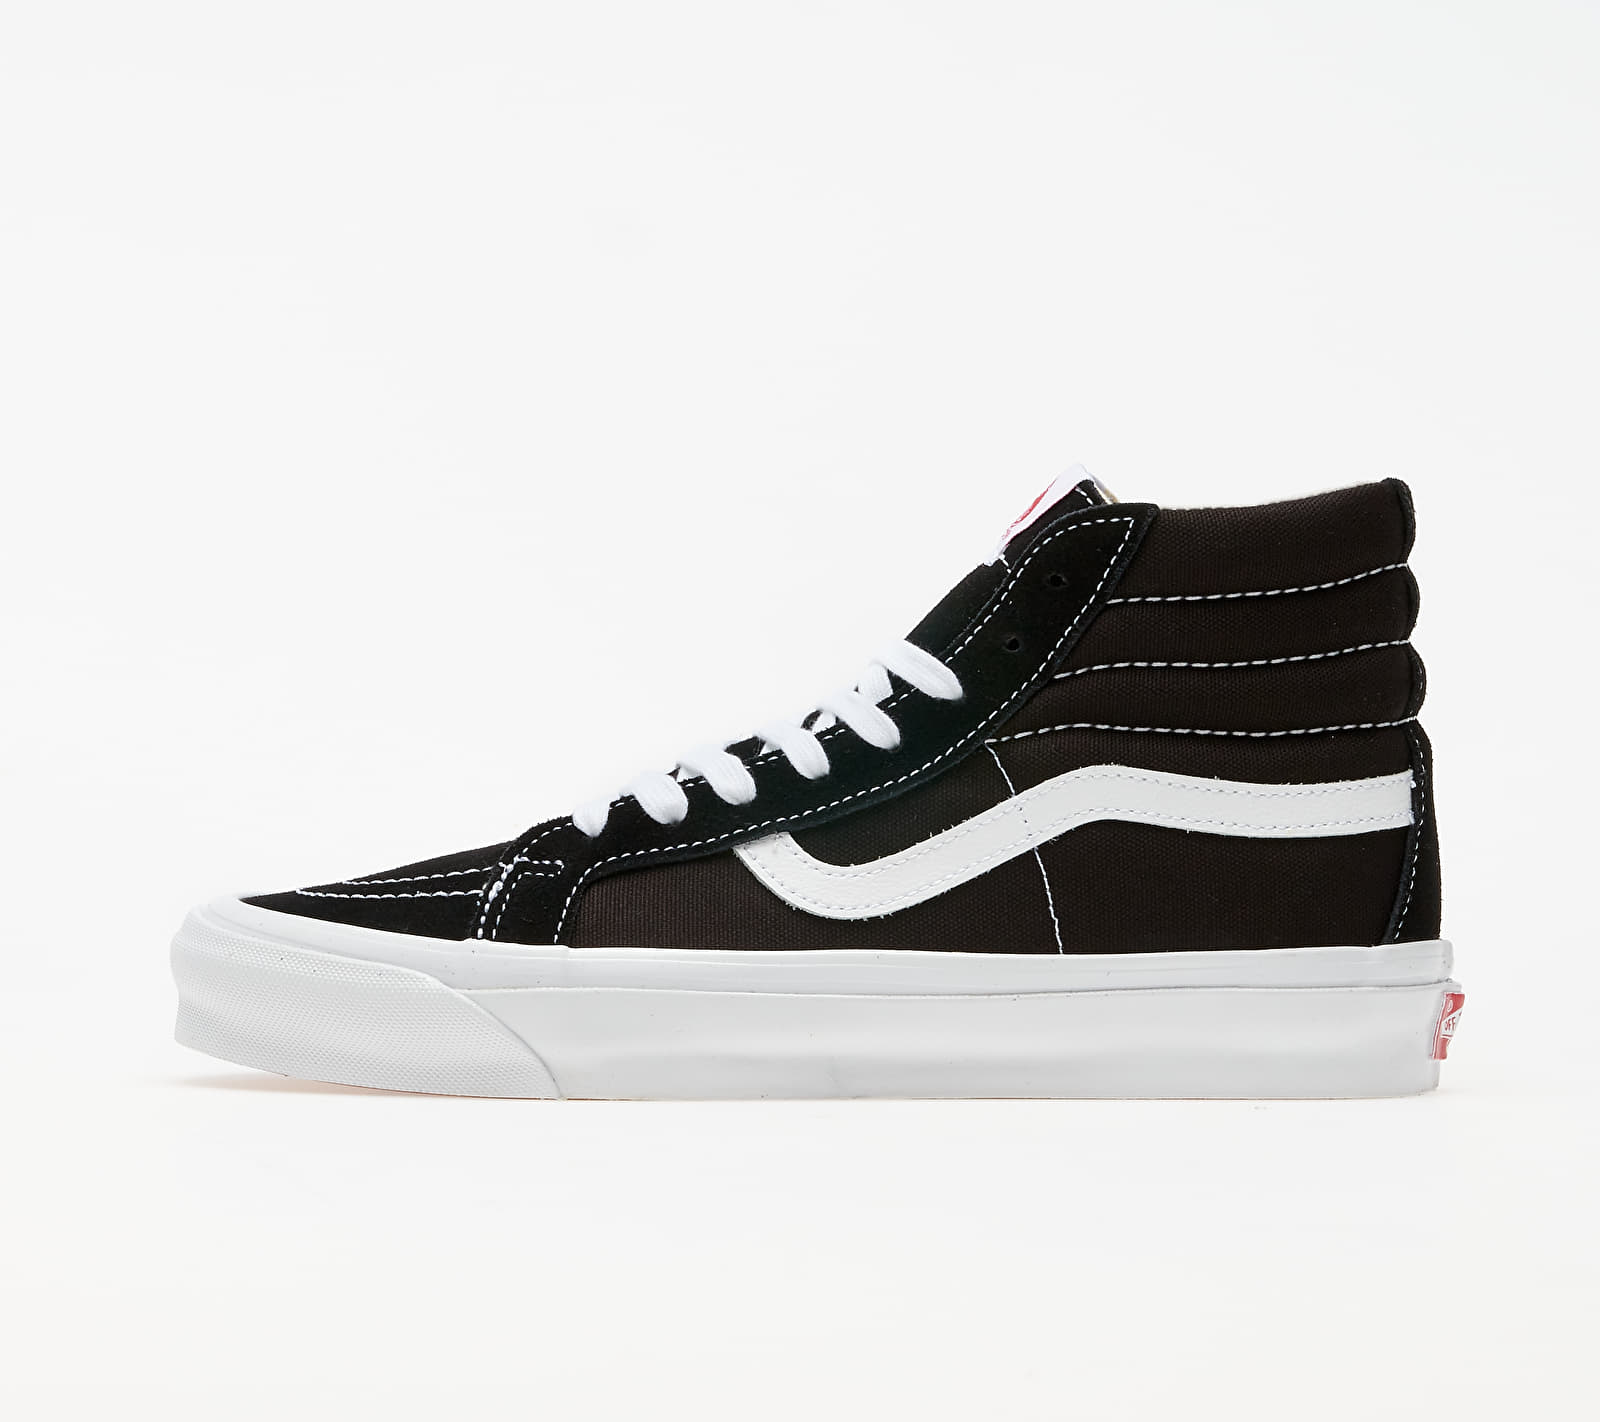 Vans Vault OG Sk8-Hi LX (Suede/ Canvas) Black/ True White EUR 40.5